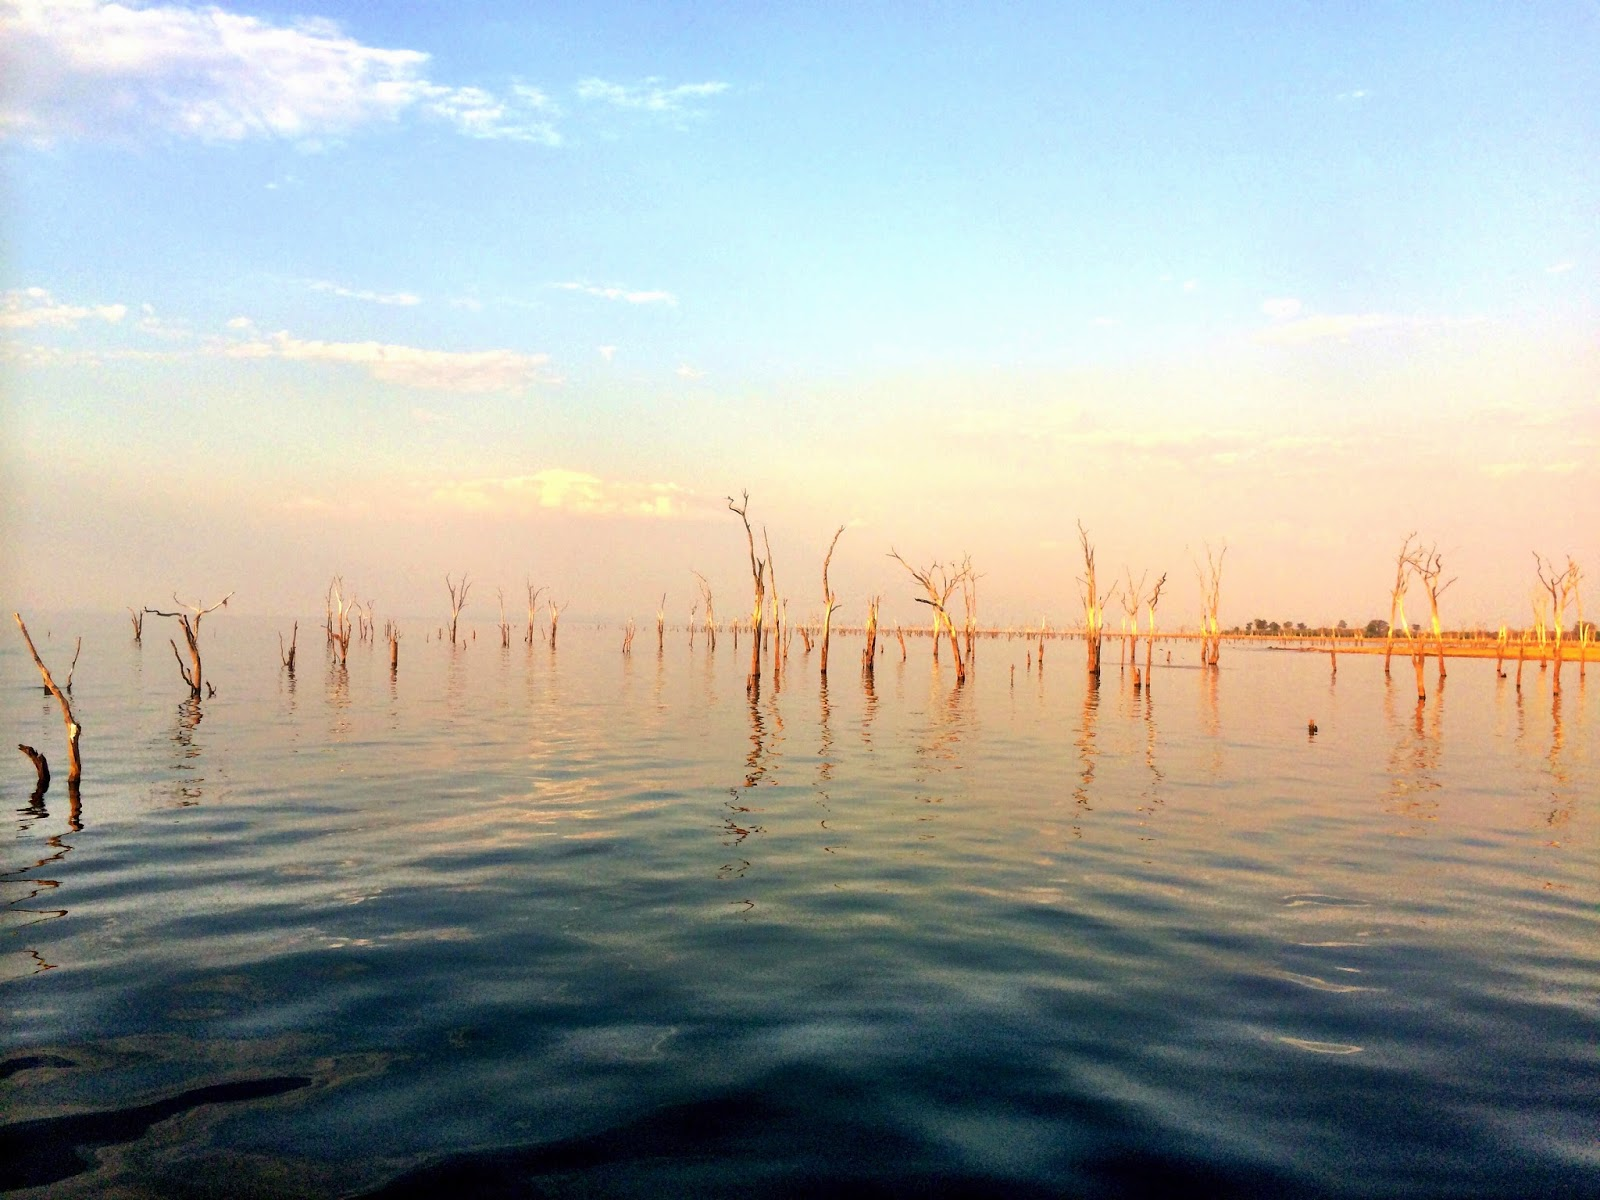 Dead trees protrude the surface of the lake and show recent water levels